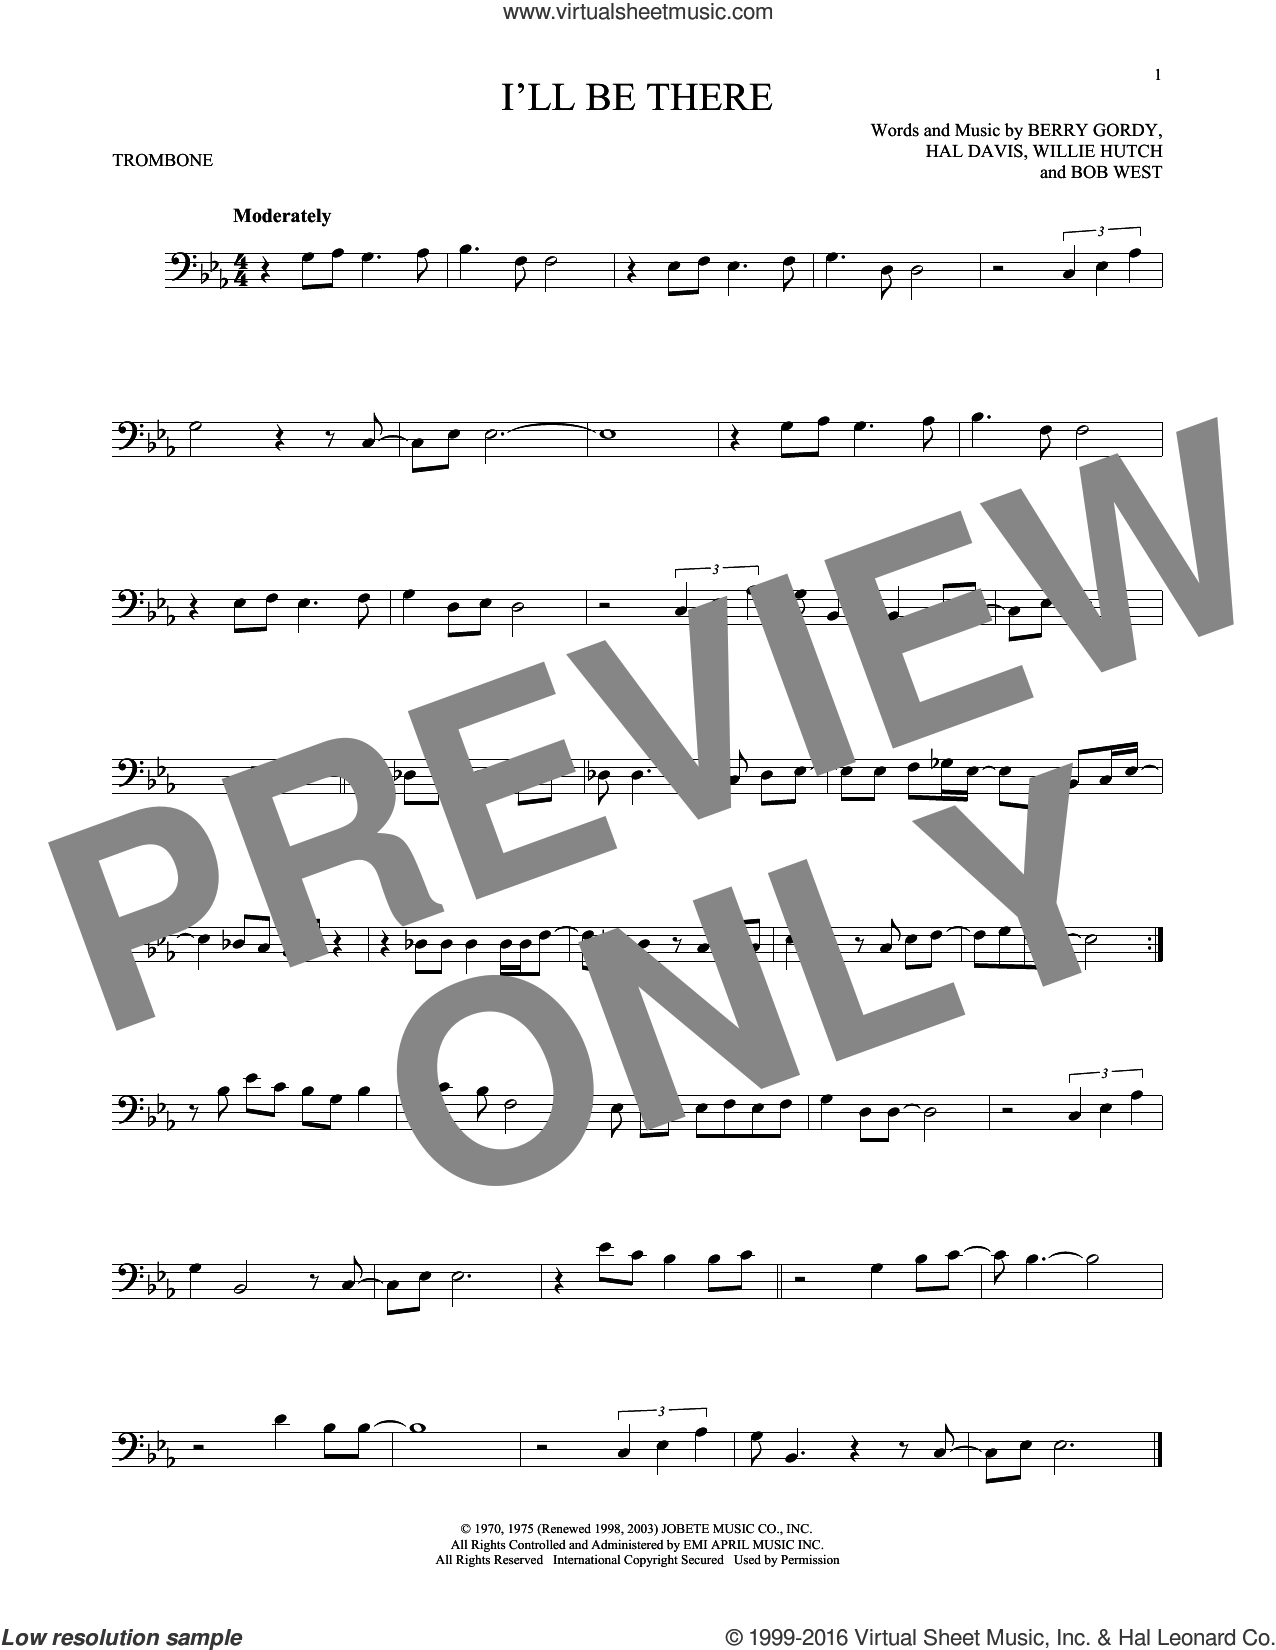 I'll Be There sheet music for trombone solo by Hal Davis, The Jackson 5 and Berry Gordy Jr.. Score Image Preview.